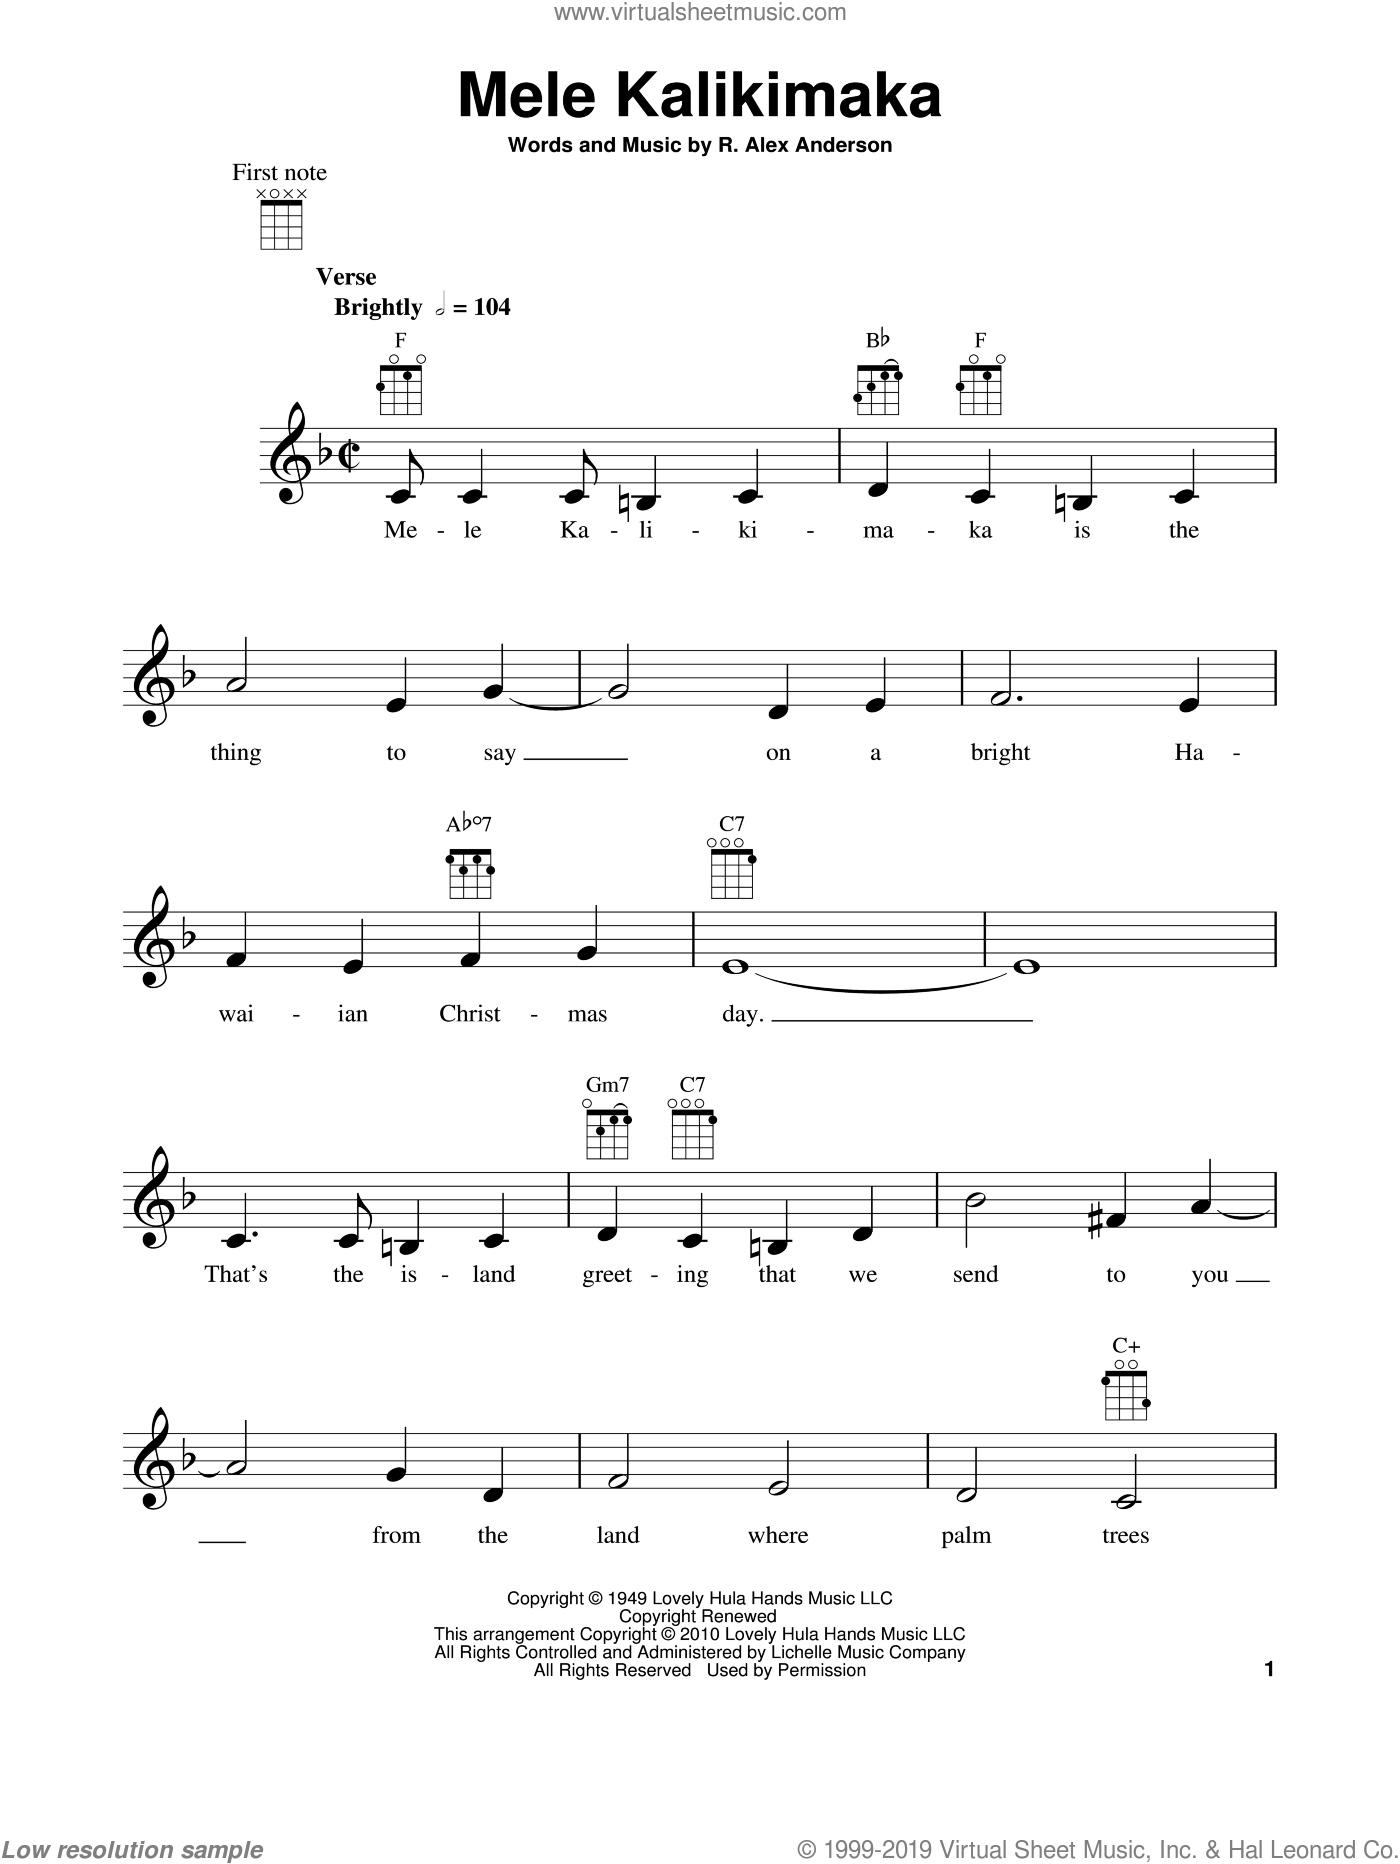 Mele Kalikimaka (Merry Christmas In Hawaii) sheet music for ukulele by R. Alex Anderson